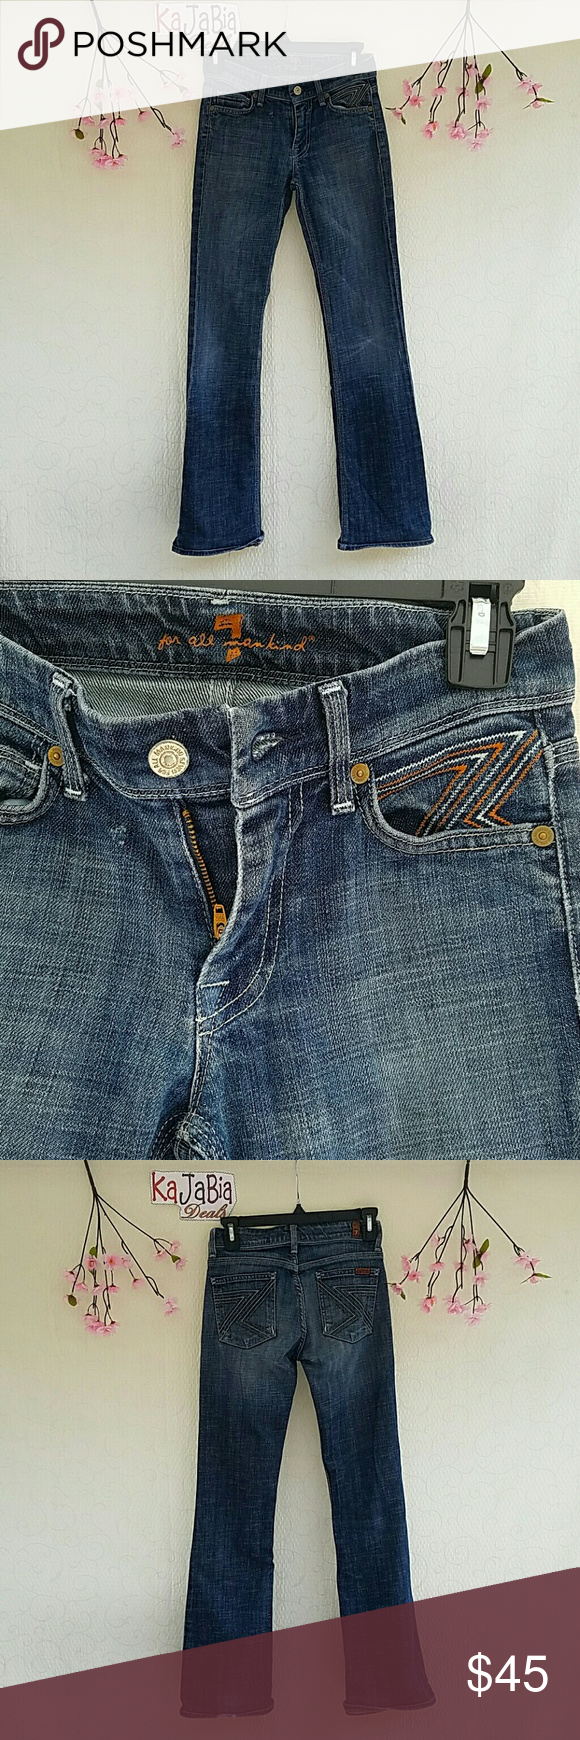 """7 for all mankind Jean Gently worn. Flint Style.Waist 13"""" inseam 29 1/2. Small rip on ankle on one leg only. Hardly noticeable. 7 For All Mankind Jeans Boot Cut"""